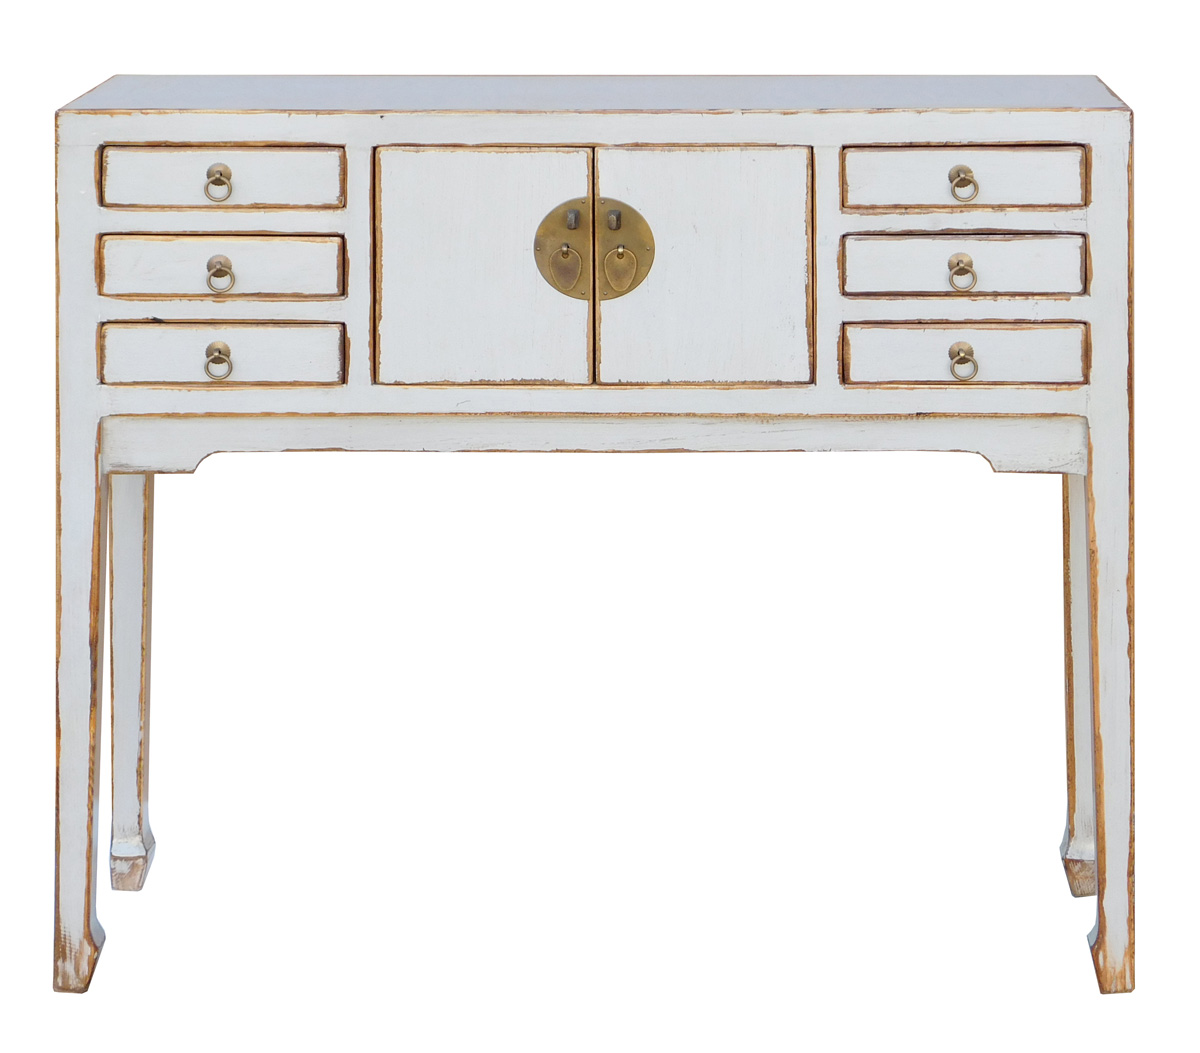 Rustic Distressed Off-White Console Table on Chairish.com